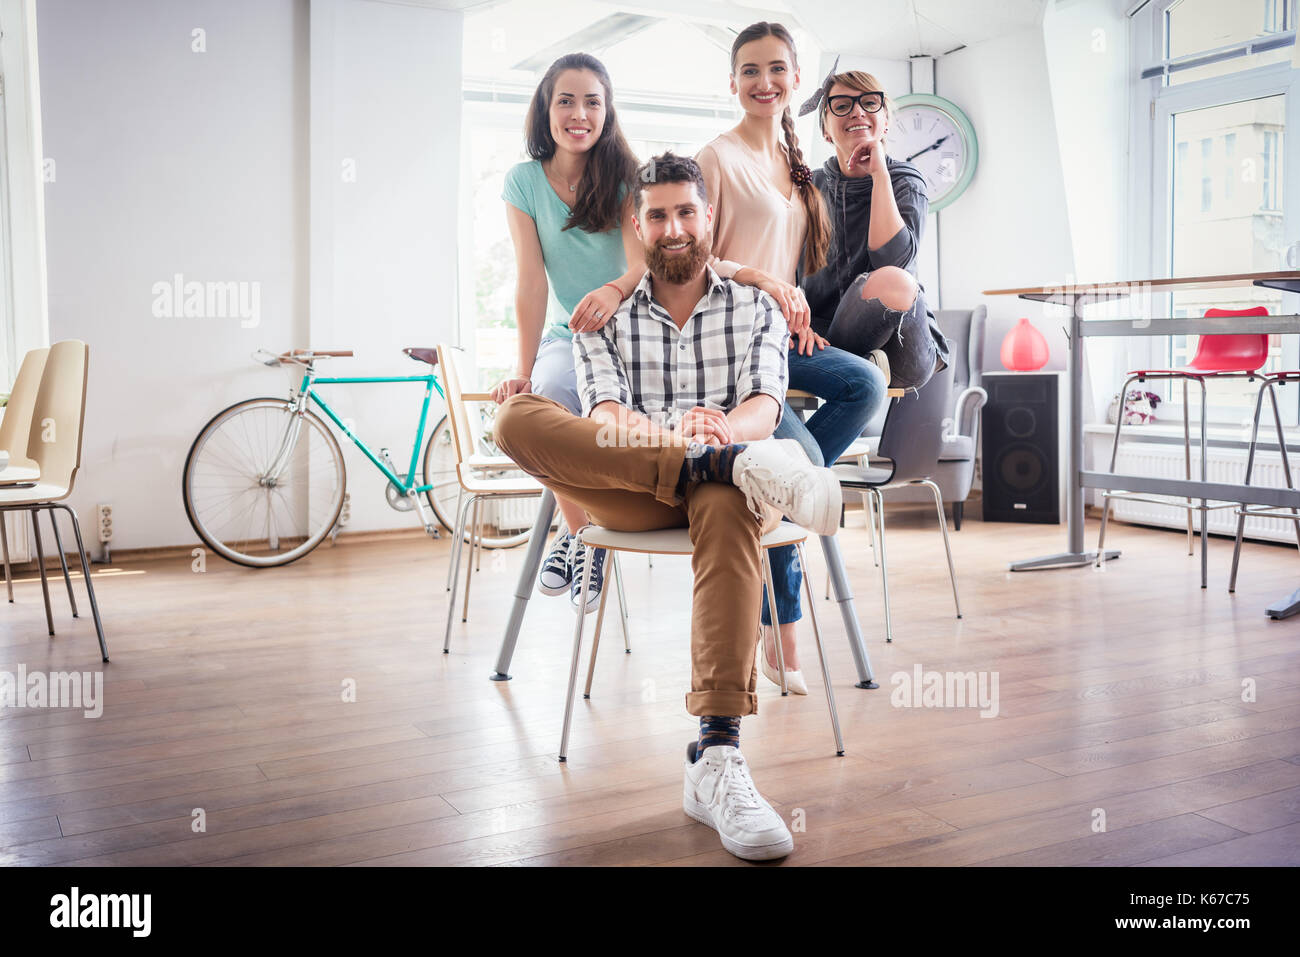 four co-workers wearing casual clothes during work in a modern h - Stock Image